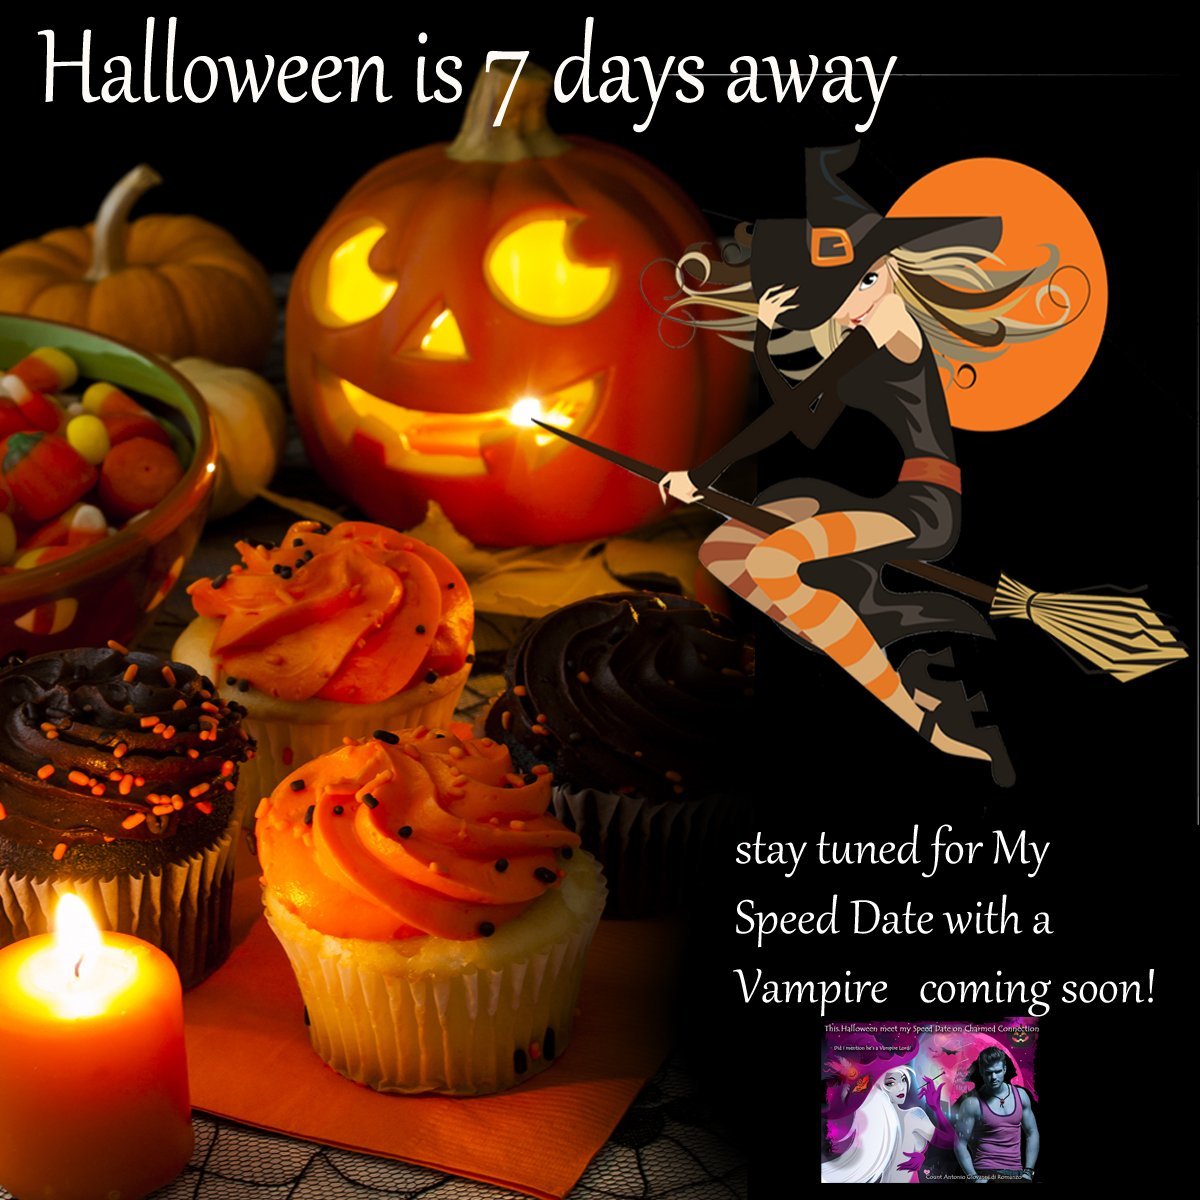 Halloween-Speed-Dating Dating-Apps in uae